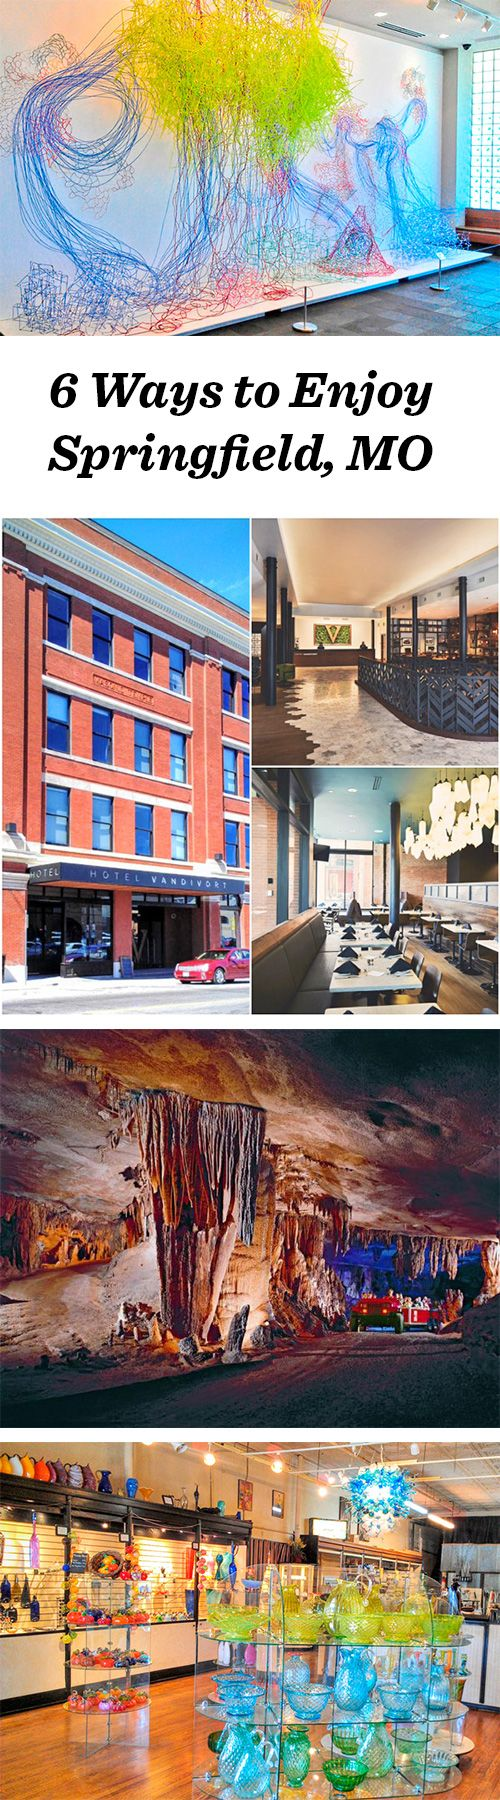 Check out beautiful art, explore an underground cave, and fall in love with Springfield, MO in our latest blog: http://www.midwestliving.com/blog/travel/6-ways-to-enjoy-springfield-missouri/